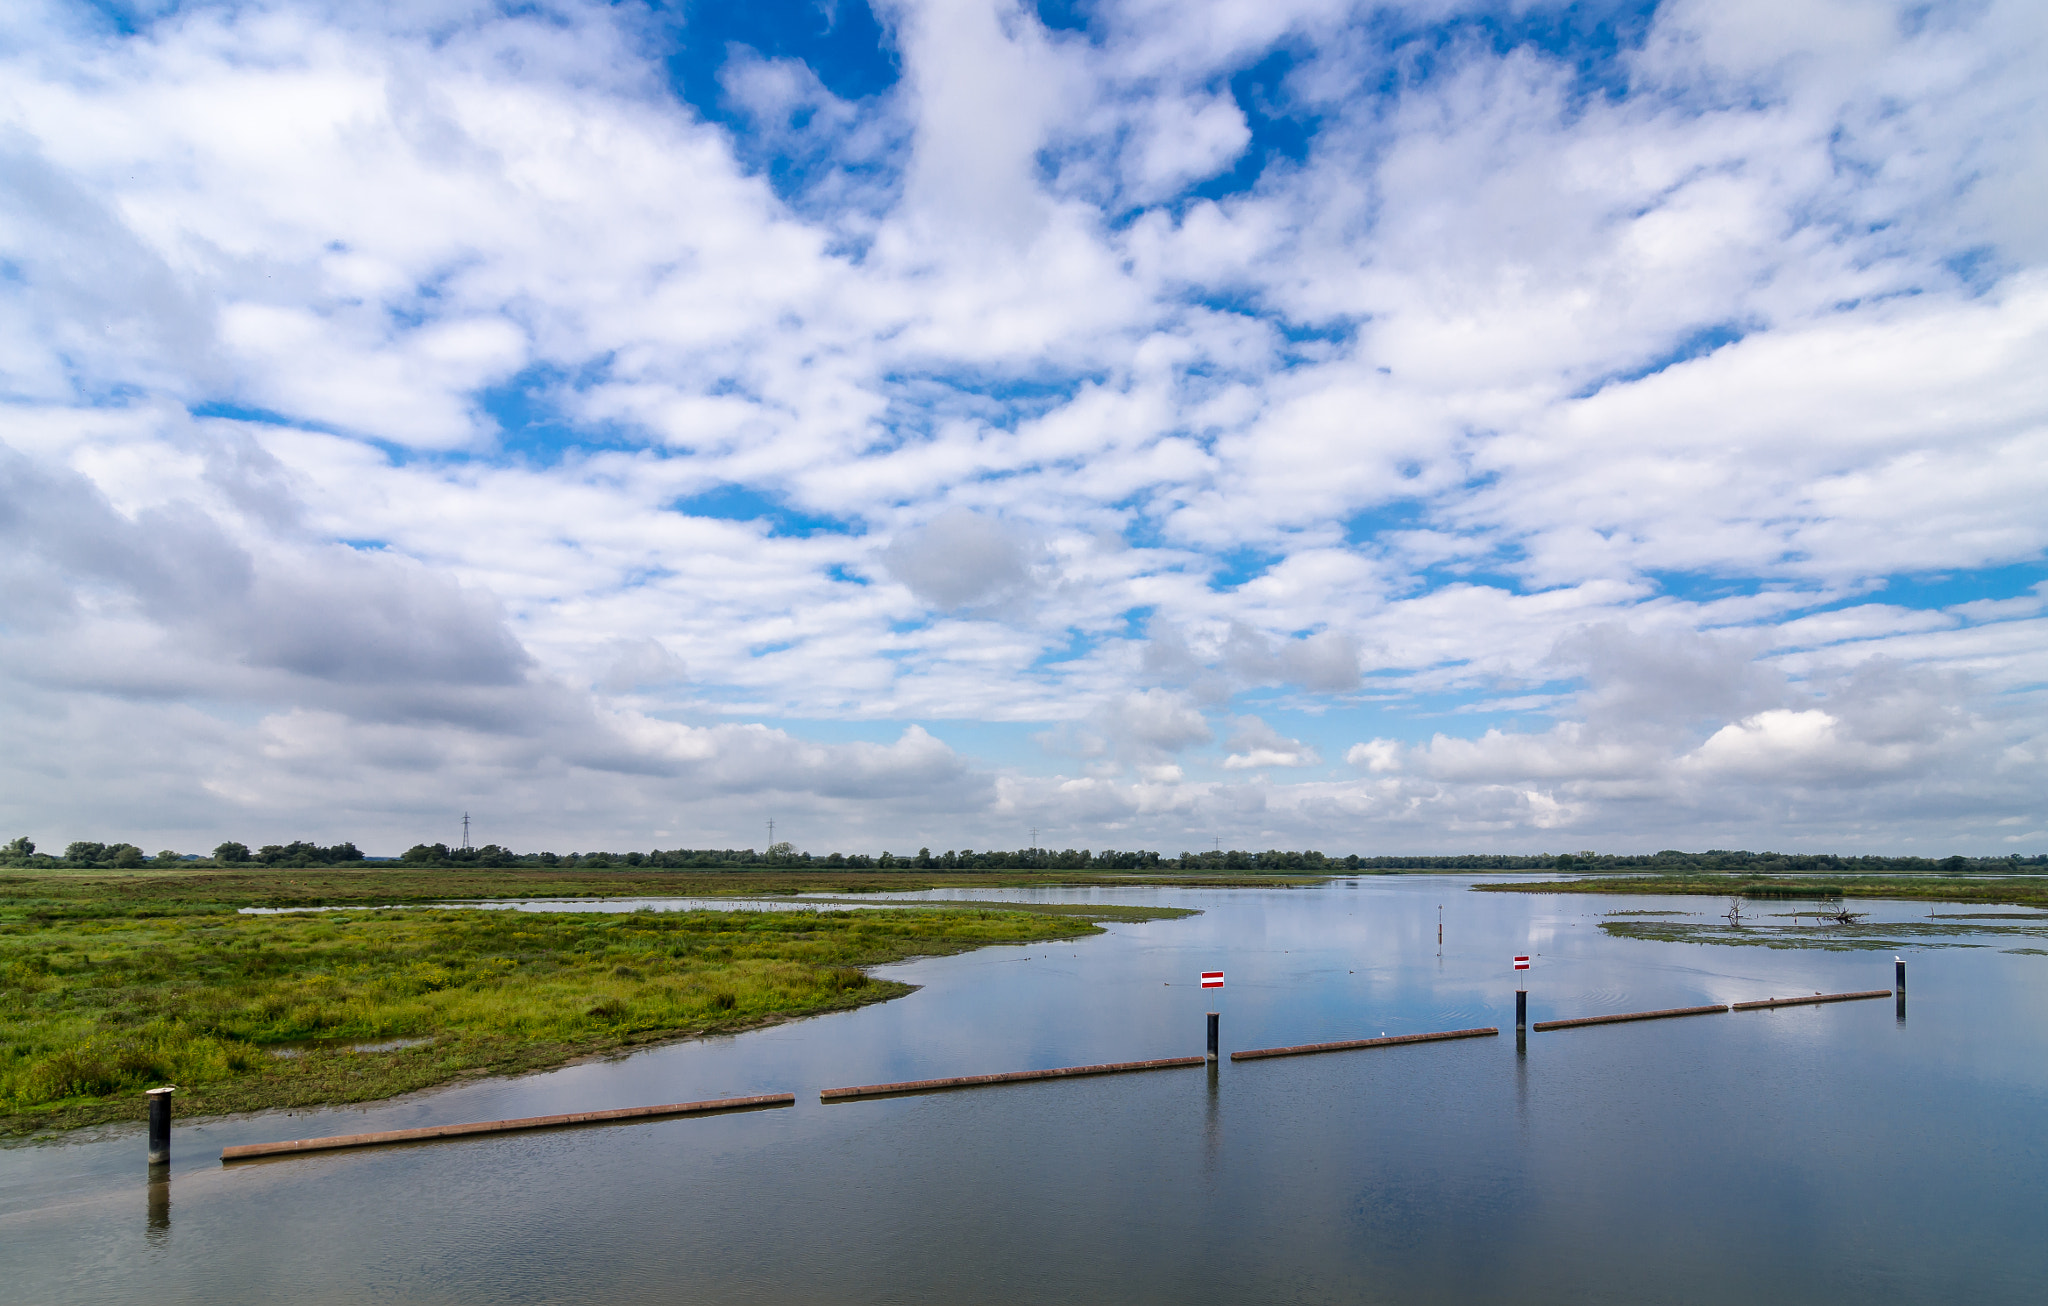 Photograph Biesbosch 3 by Mr. DESHAMER on 500px